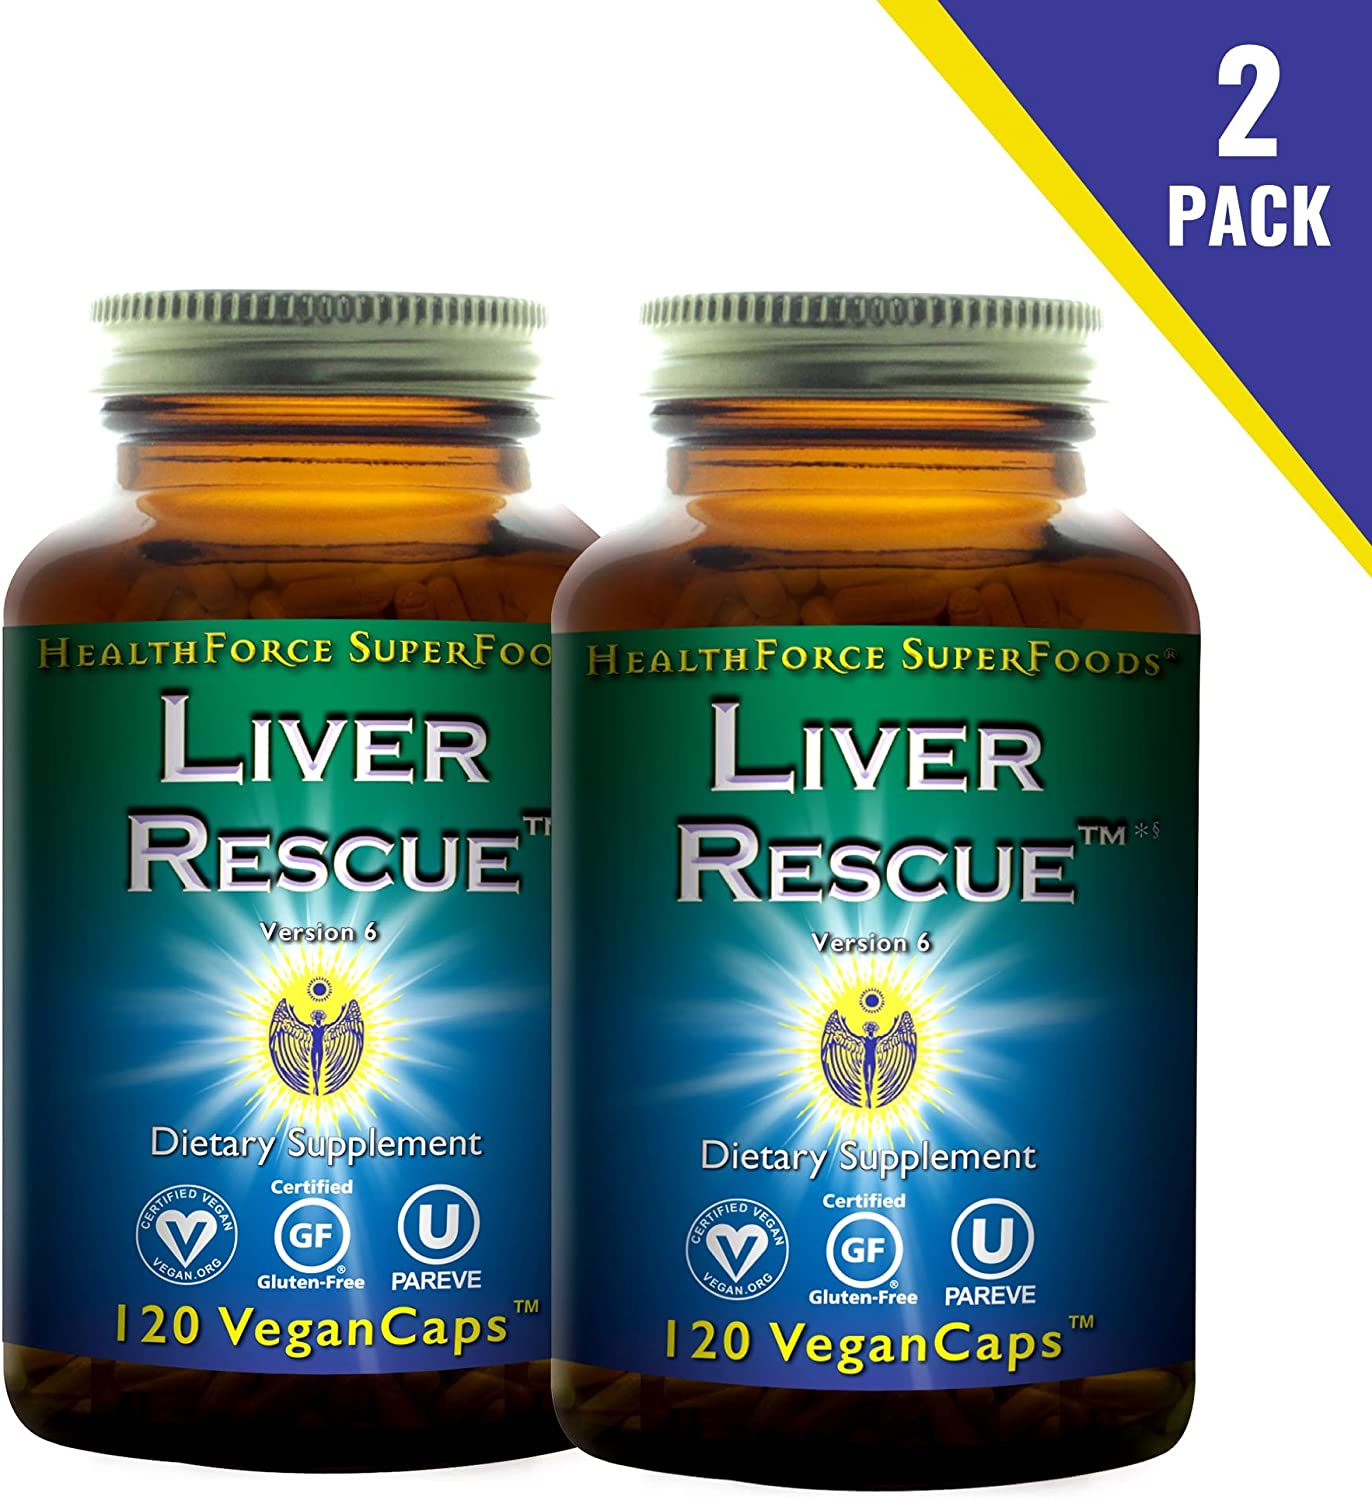 HealthForce SuperFoods Liver Rescue (2 Pack) - 120 Vegan Capsules - All Natural Liver Detoxifier with Milk Thistle & Dandelion Root - Gluten Free - 120 Total Servings